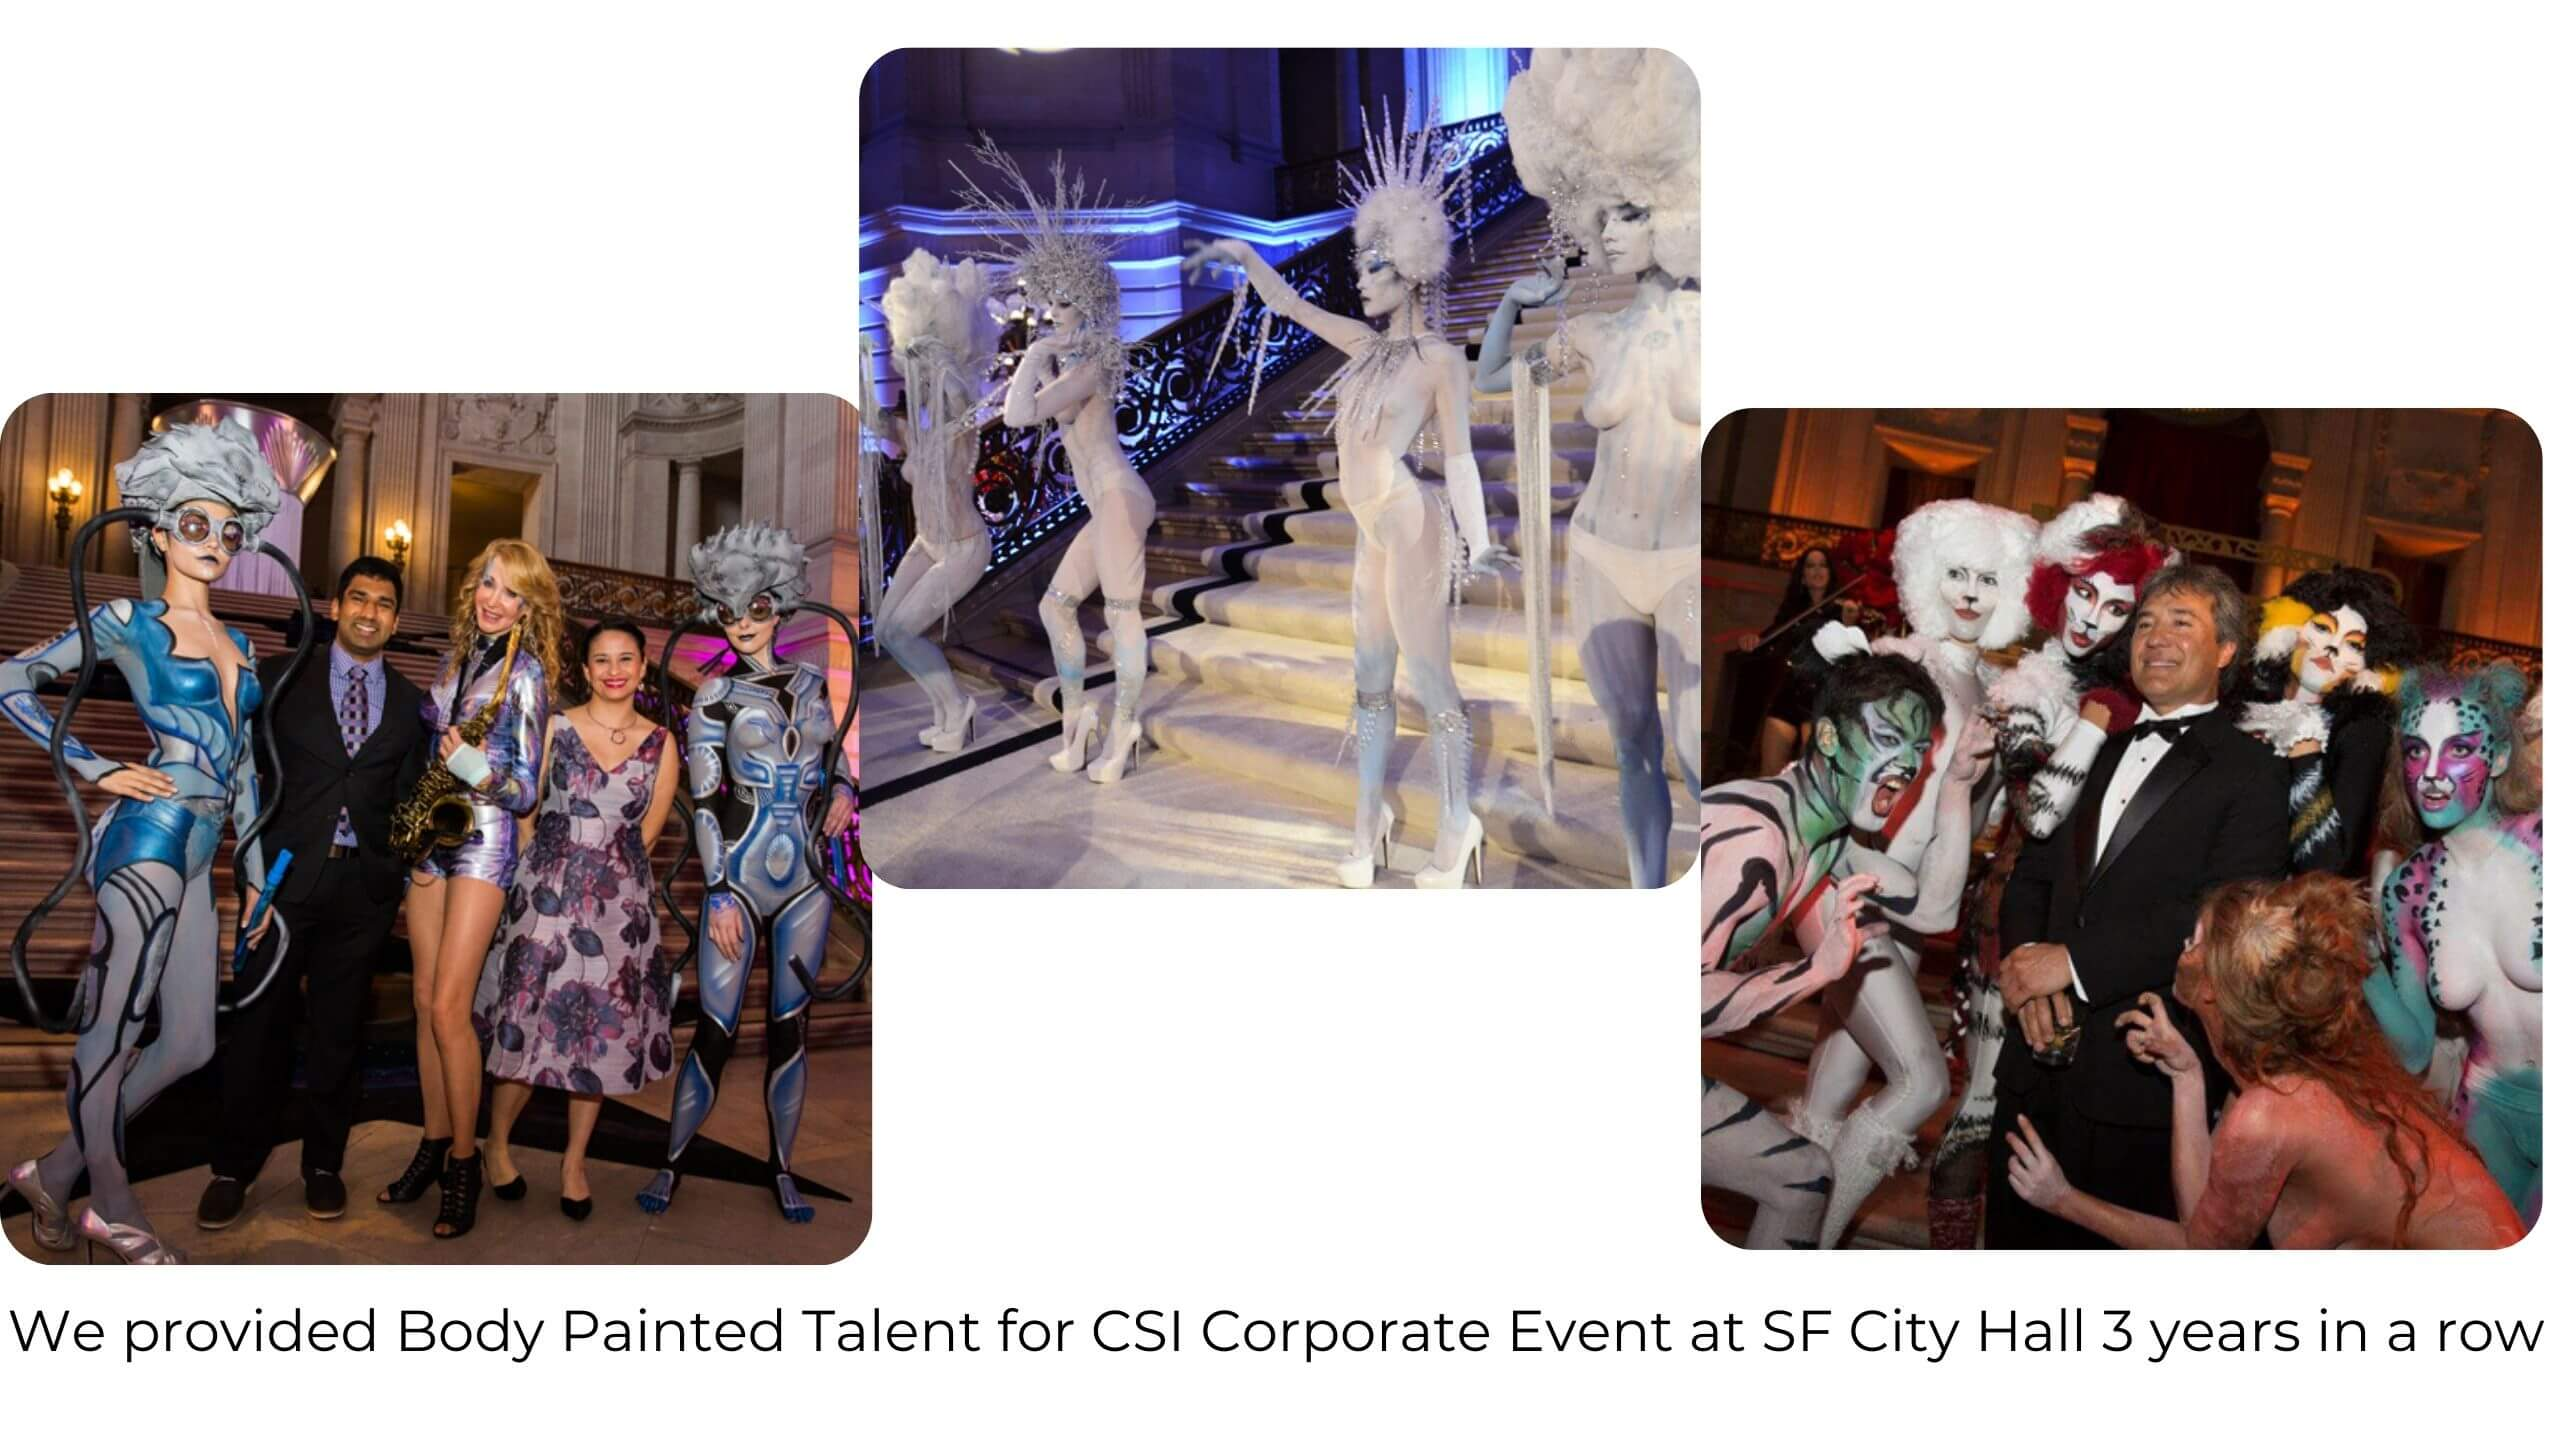 Body Painted models for Corporate Events by Catalyst Arts SF